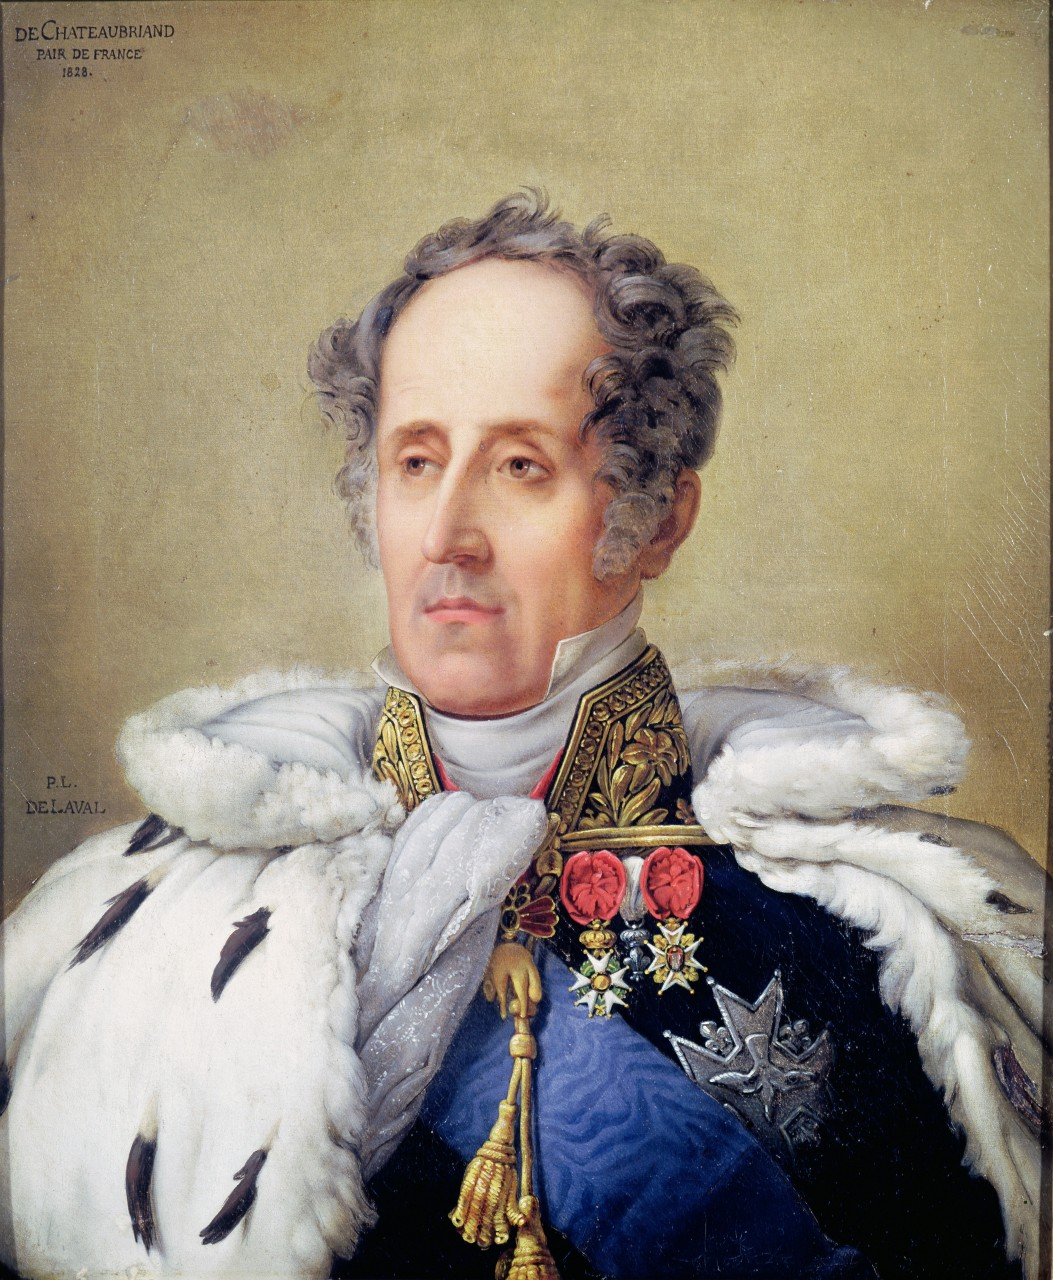 François-René de Chateaubriand en costume de pair de France, Pierre-Louis Delaval, 1828 © Bridgeman Images/Leemage